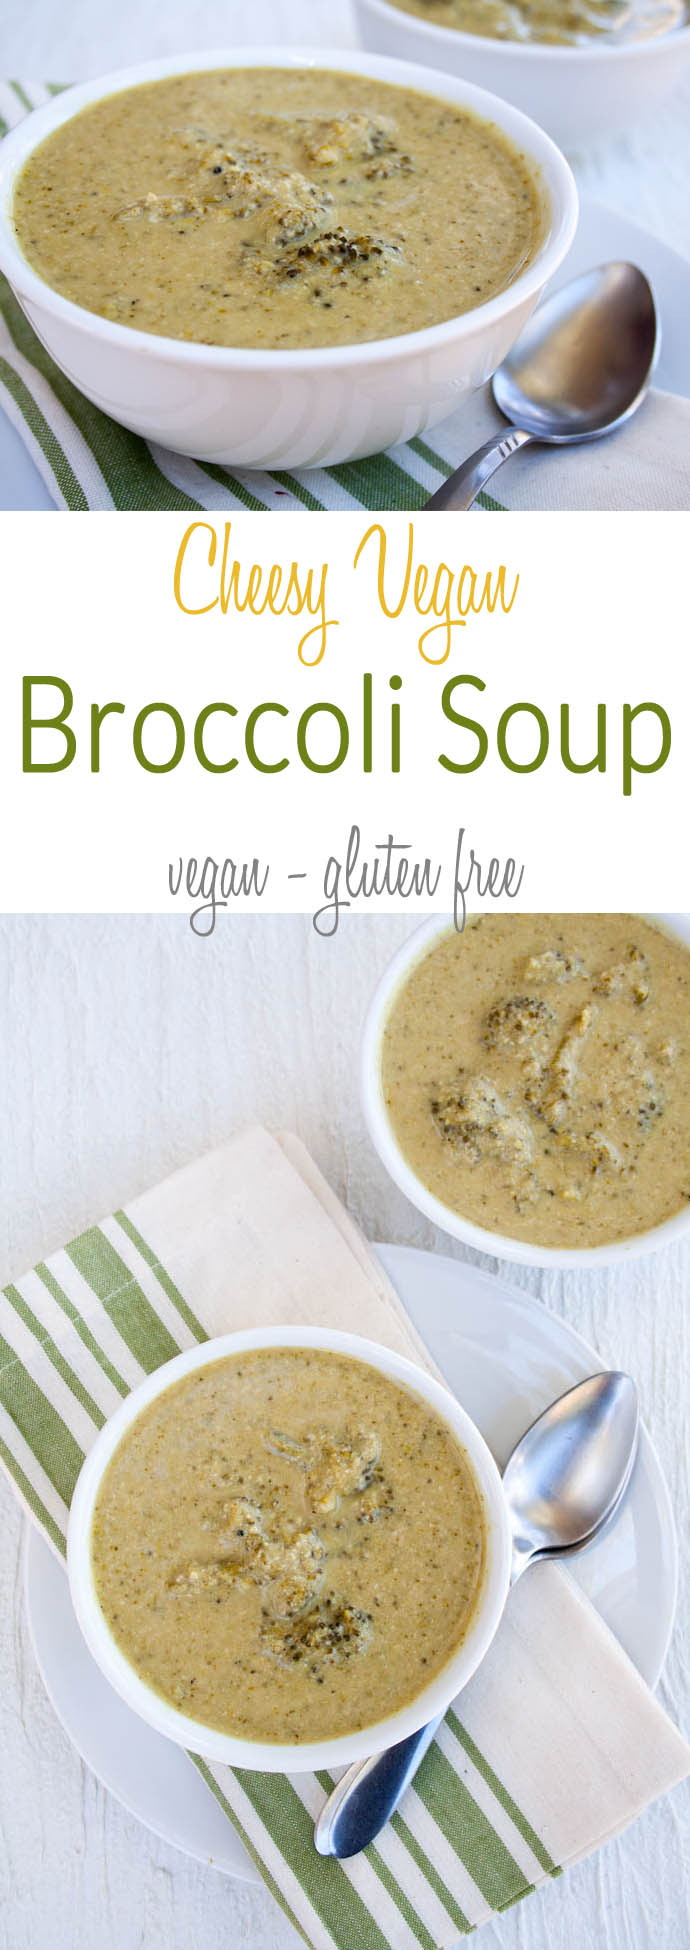 Cheesy Vegan Broccoli Soup collage photo with text.